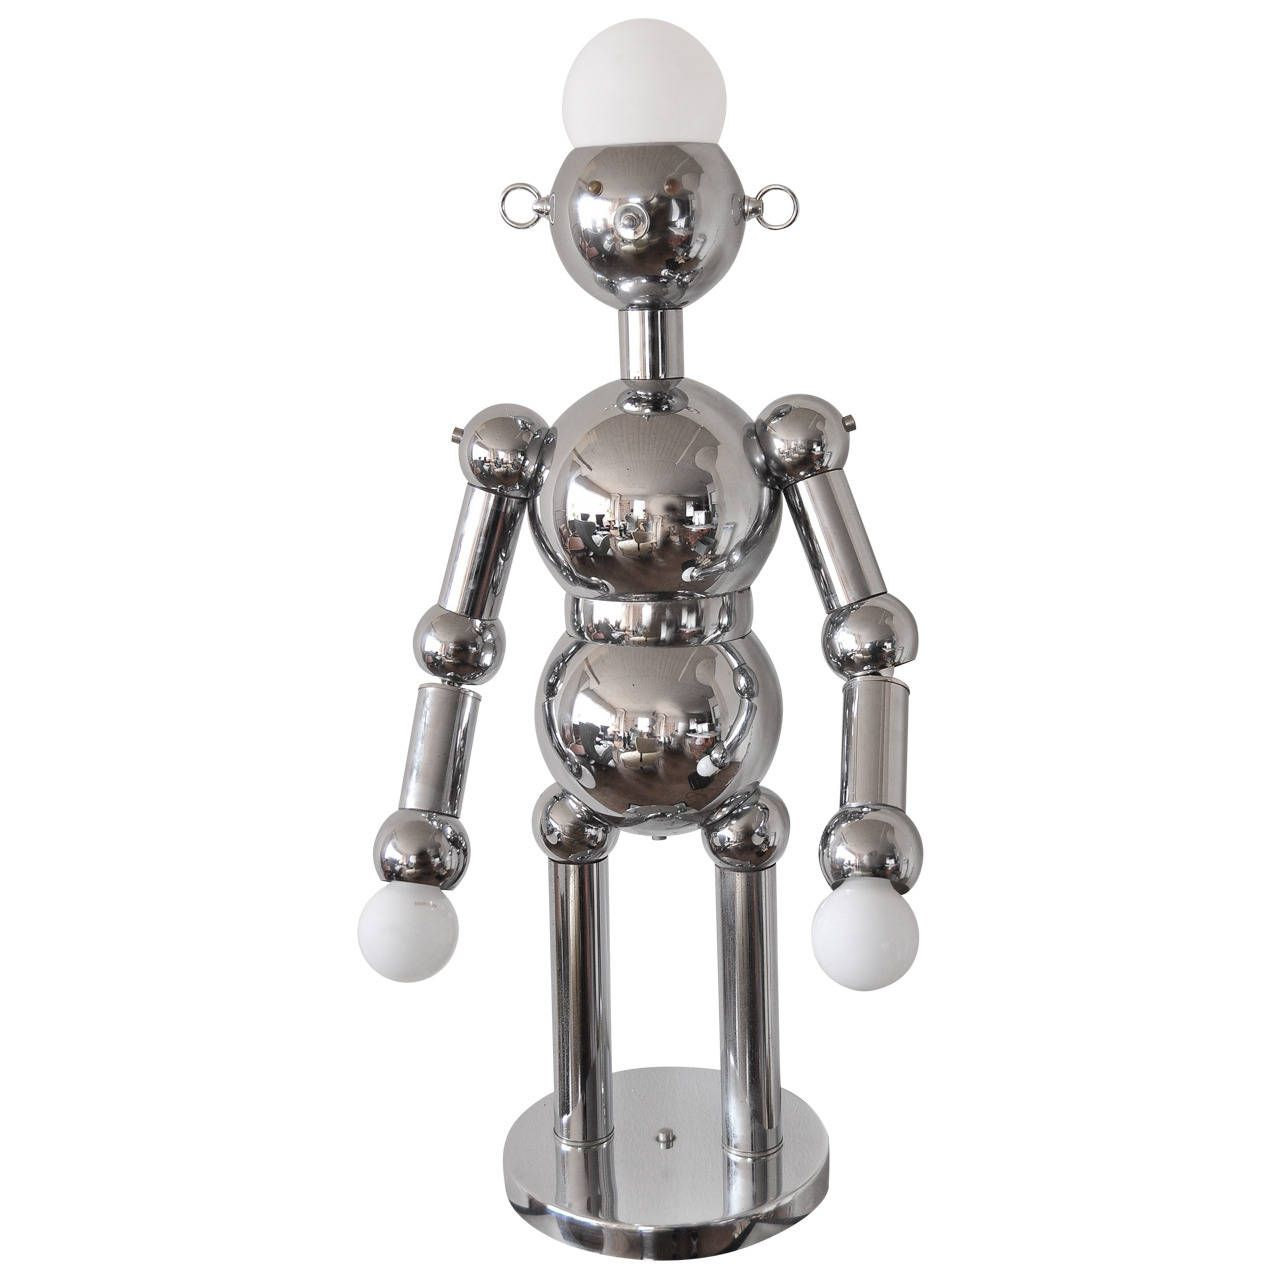 Torino Chrome Robot Lamp Large Size Italy Circa 1960 S From A Unique Collection Of Antique And Modern Tabl Modern Table Lamp Table Lamp Lighting Robot Lamp